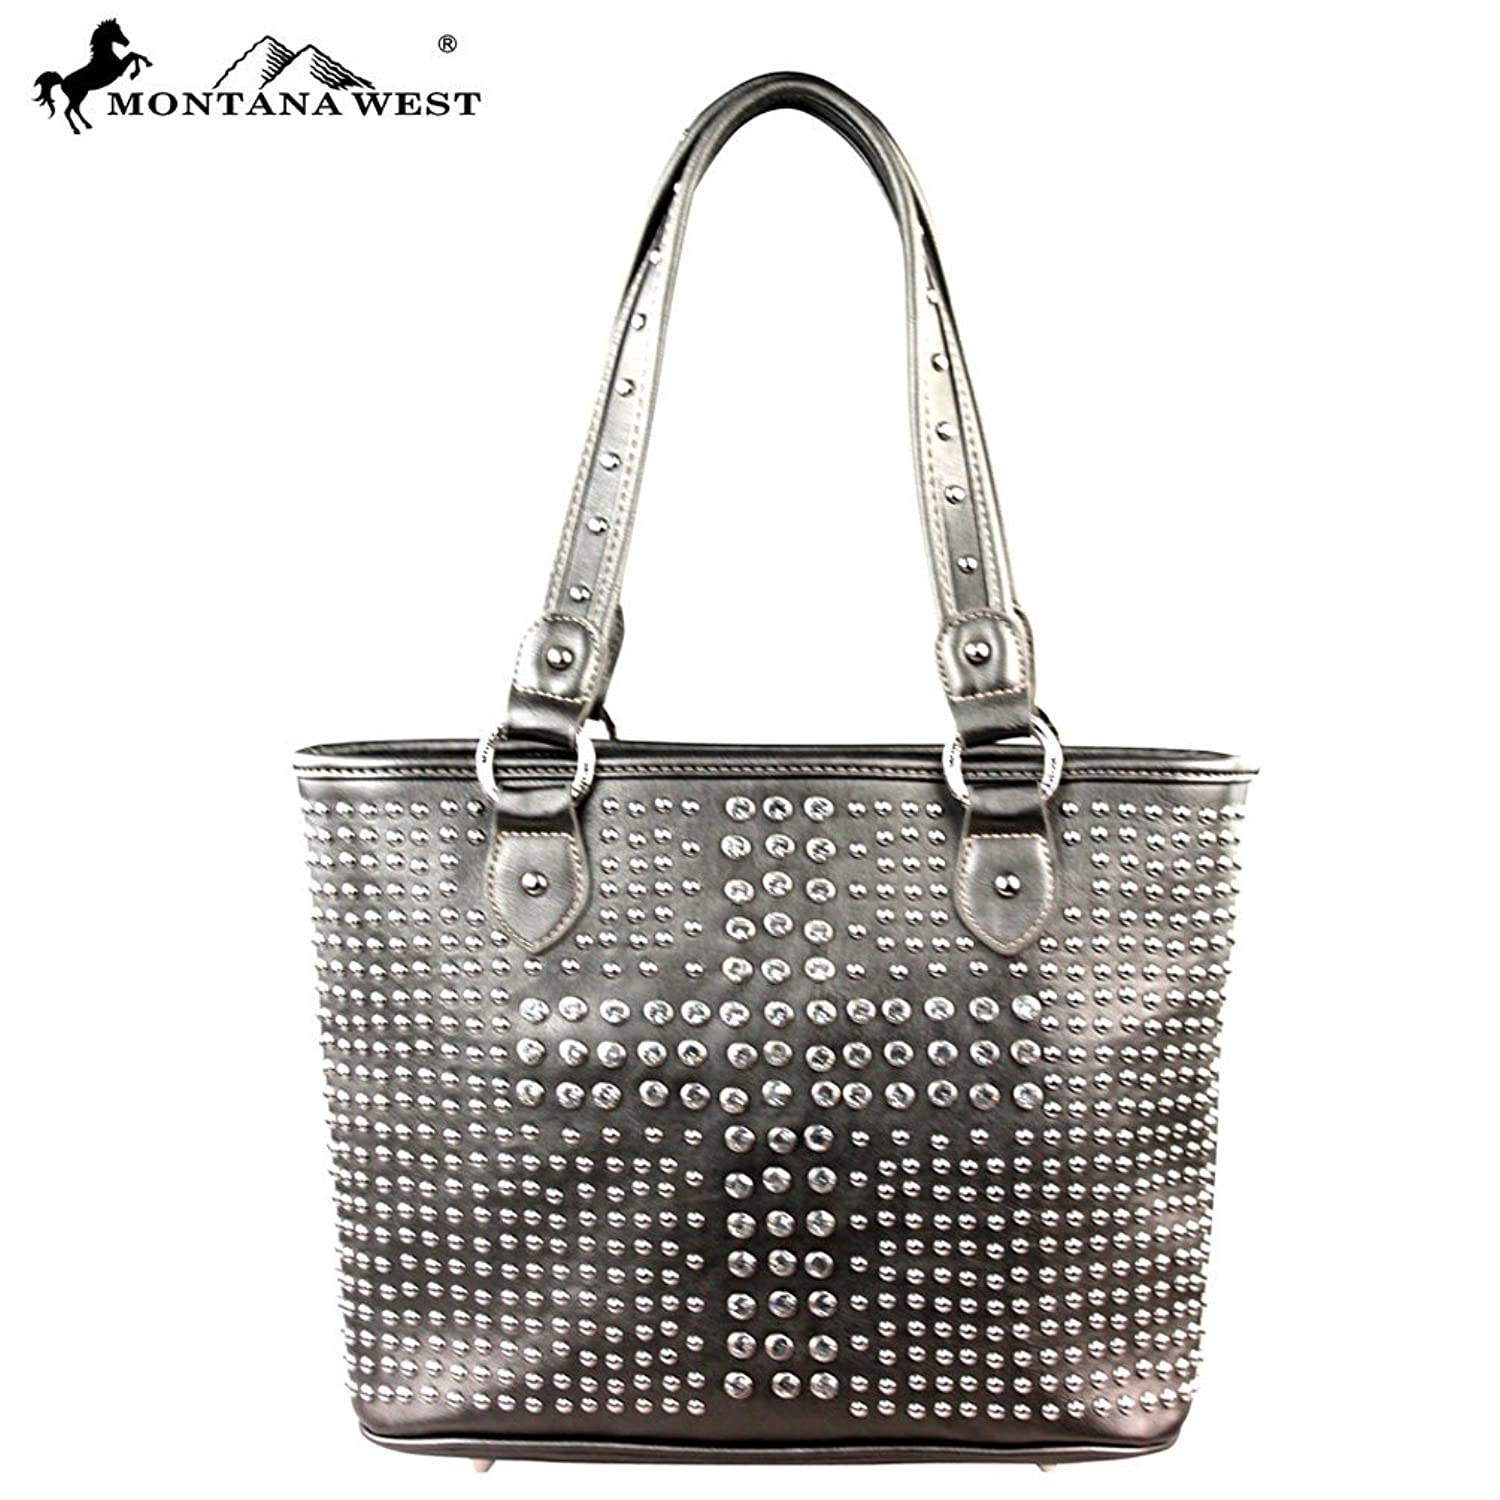 Montana West Bling Bling Collection Handbag Purse Pewter Mw222-8014